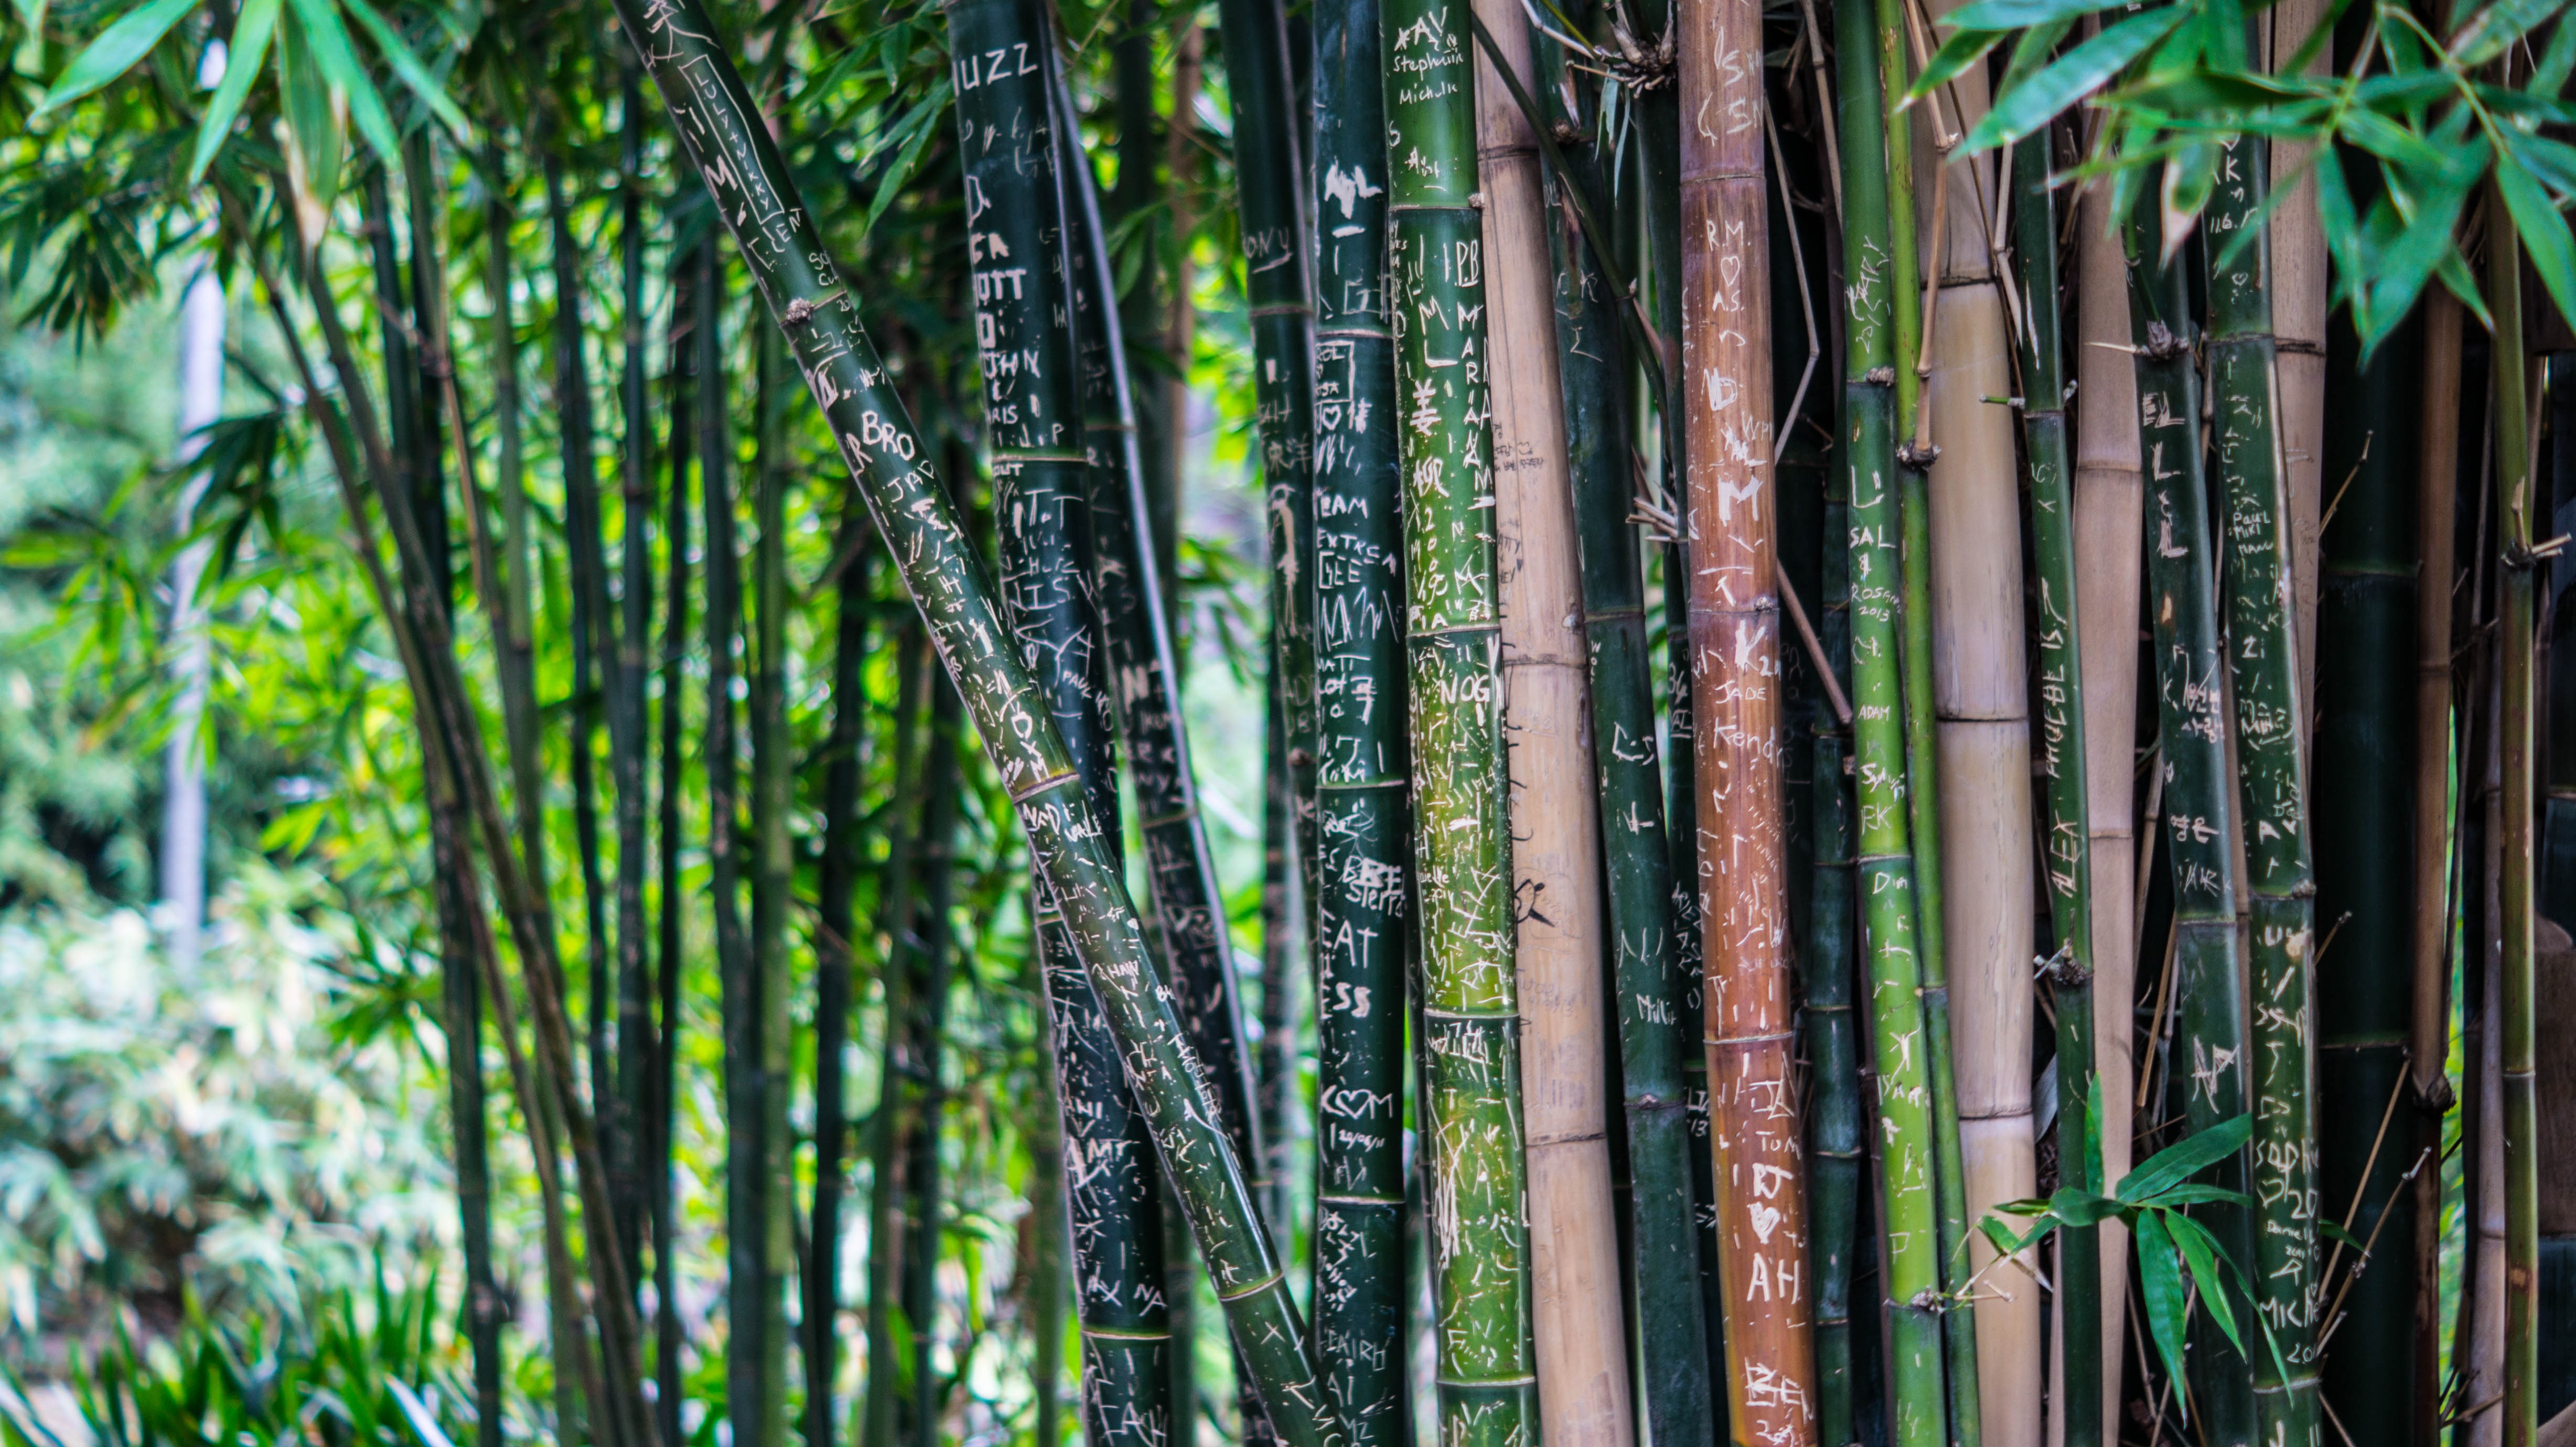 63546 download wallpaper Nature, Bamboo, Plant, Lettering, Inscriptions screensavers and pictures for free